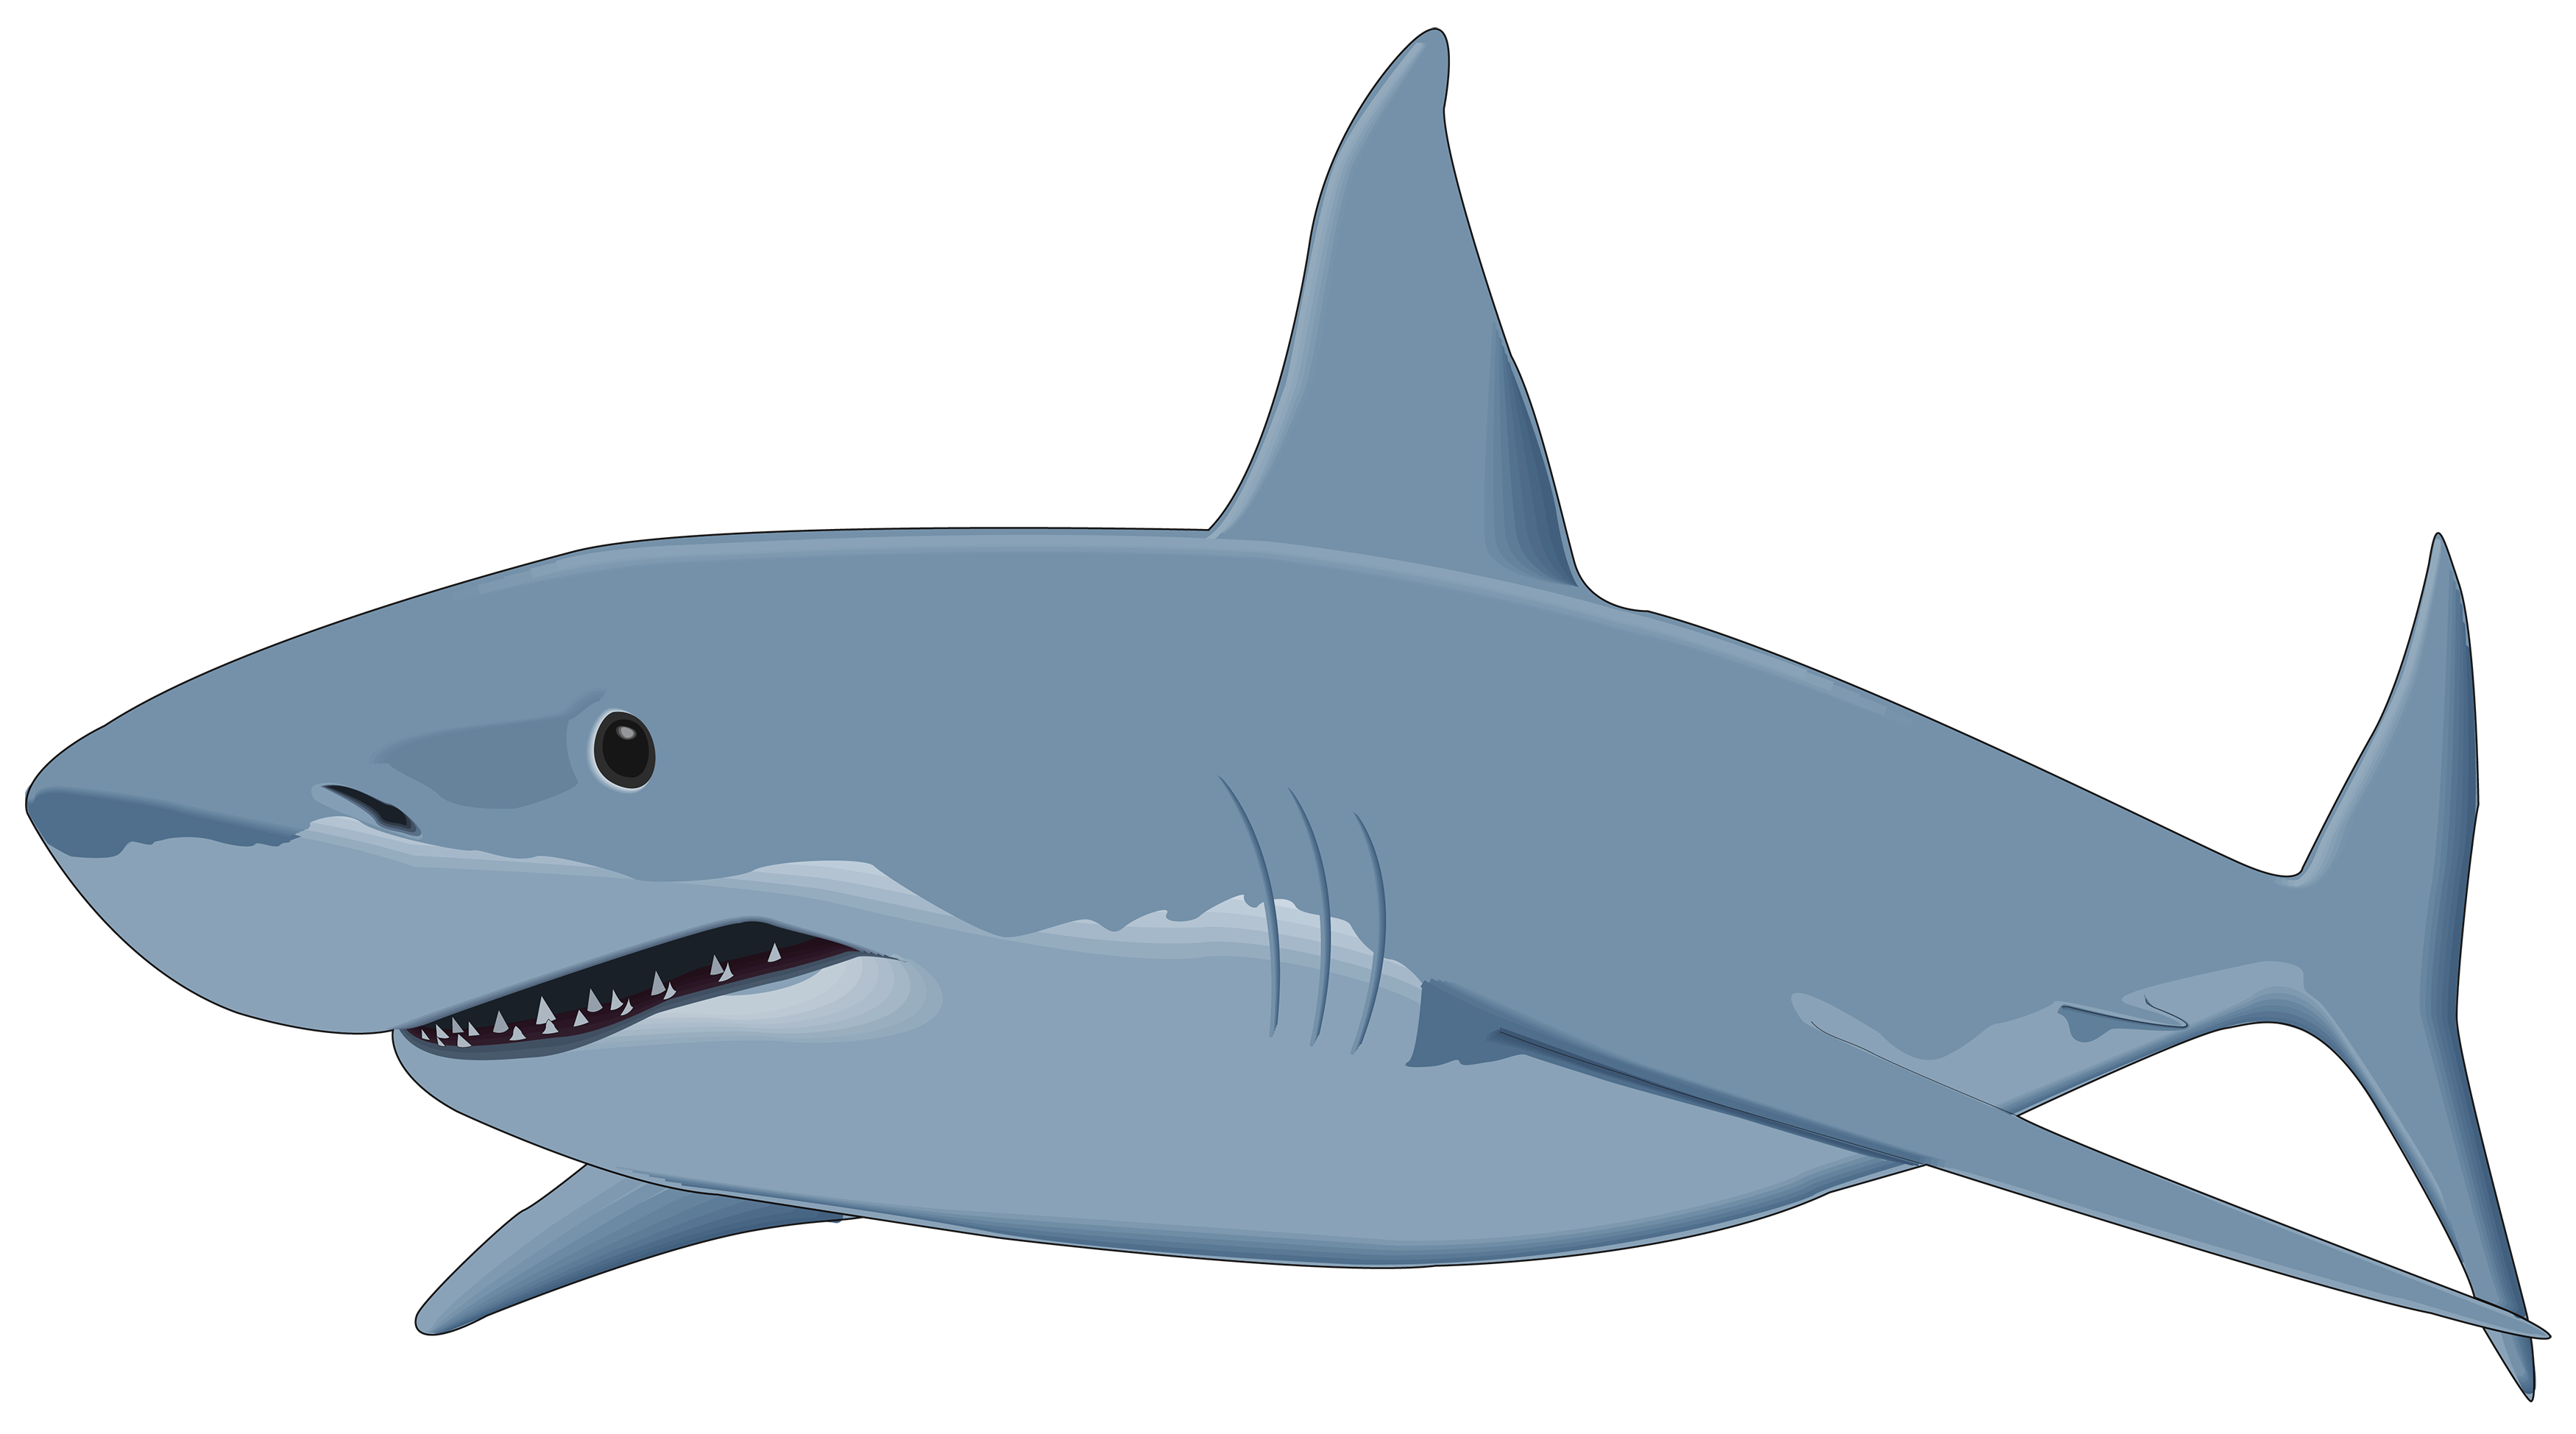 Png image best web. Family clipart shark